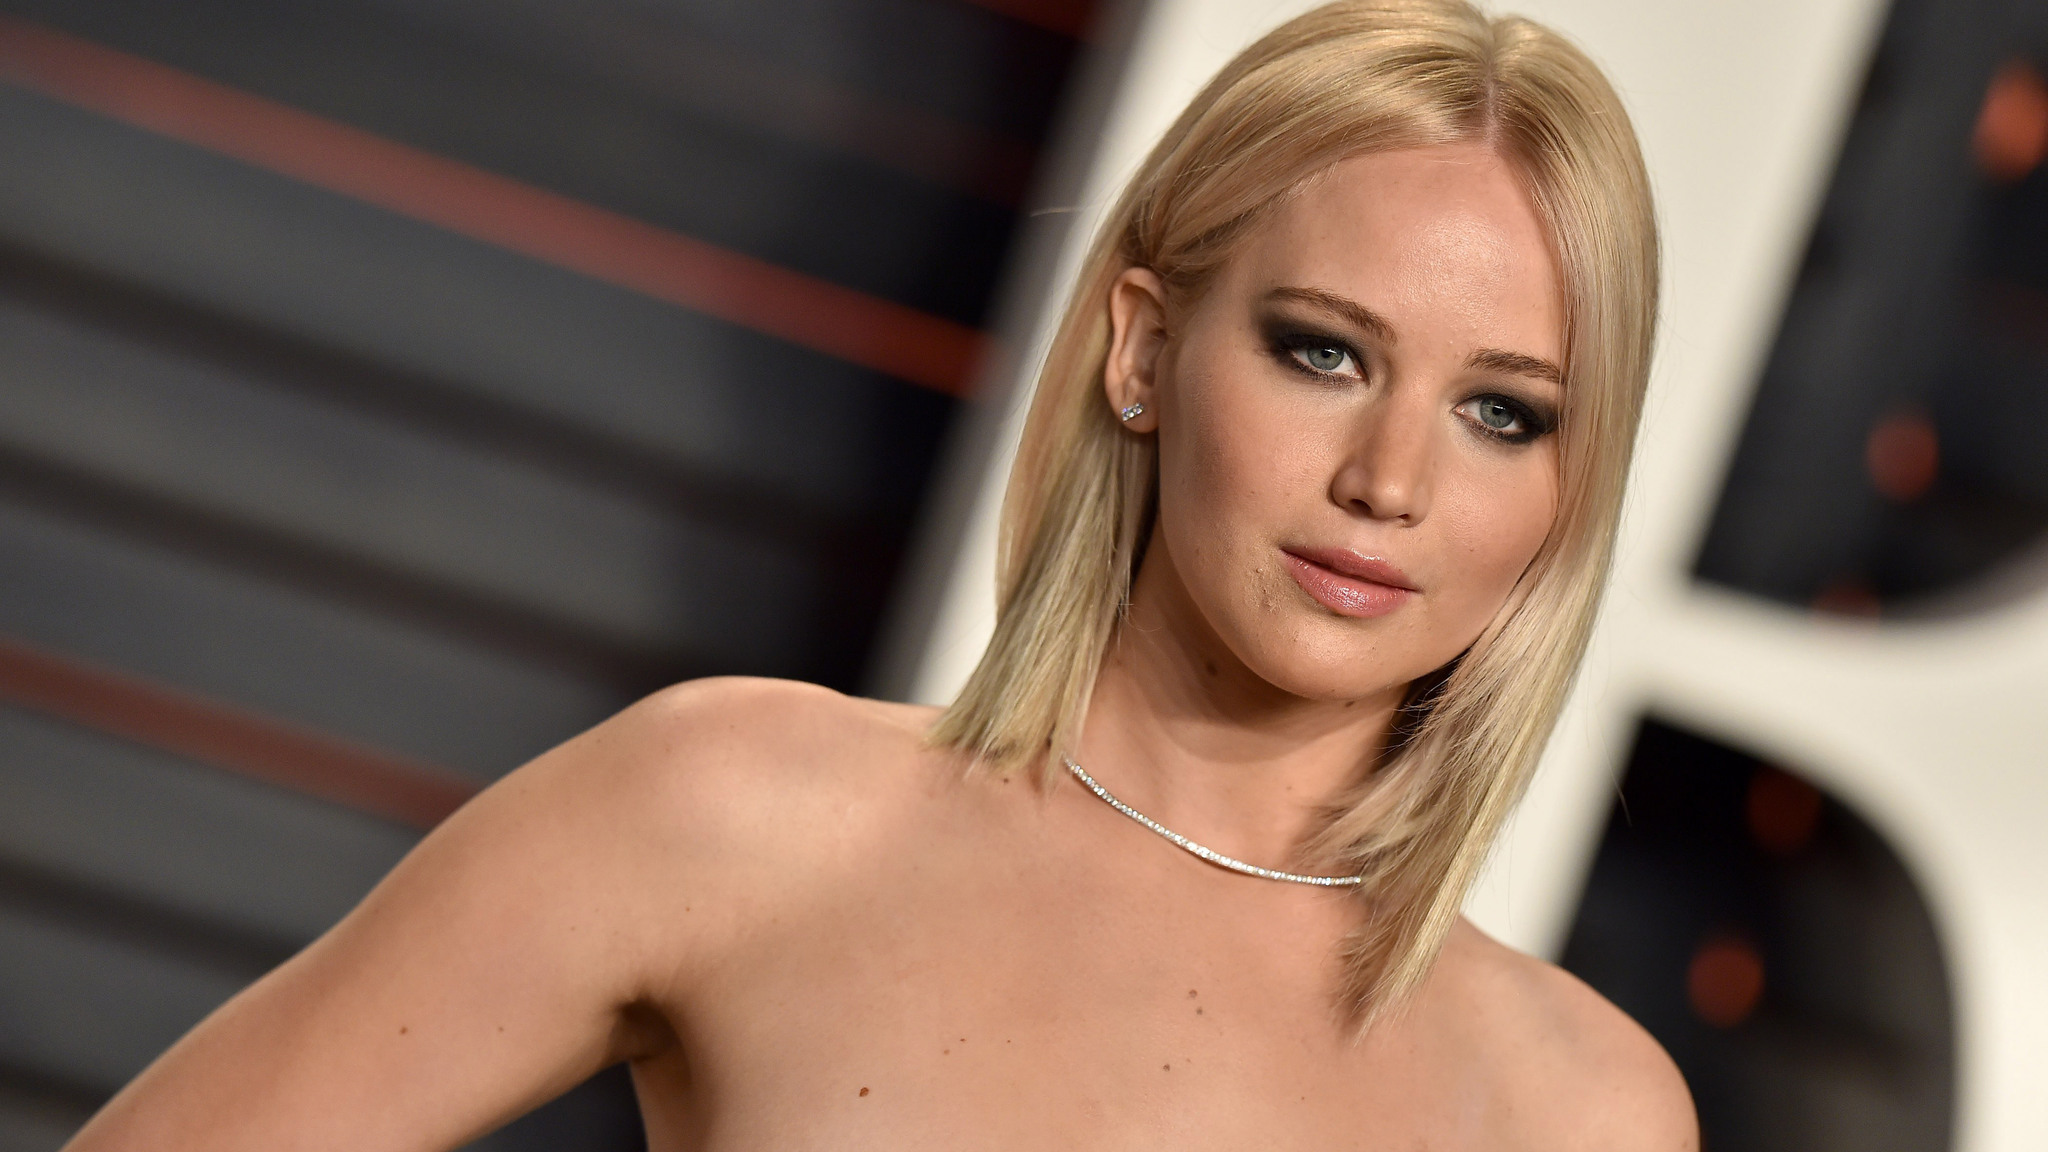 jennifer-lawrence-2016-2-new.jpg